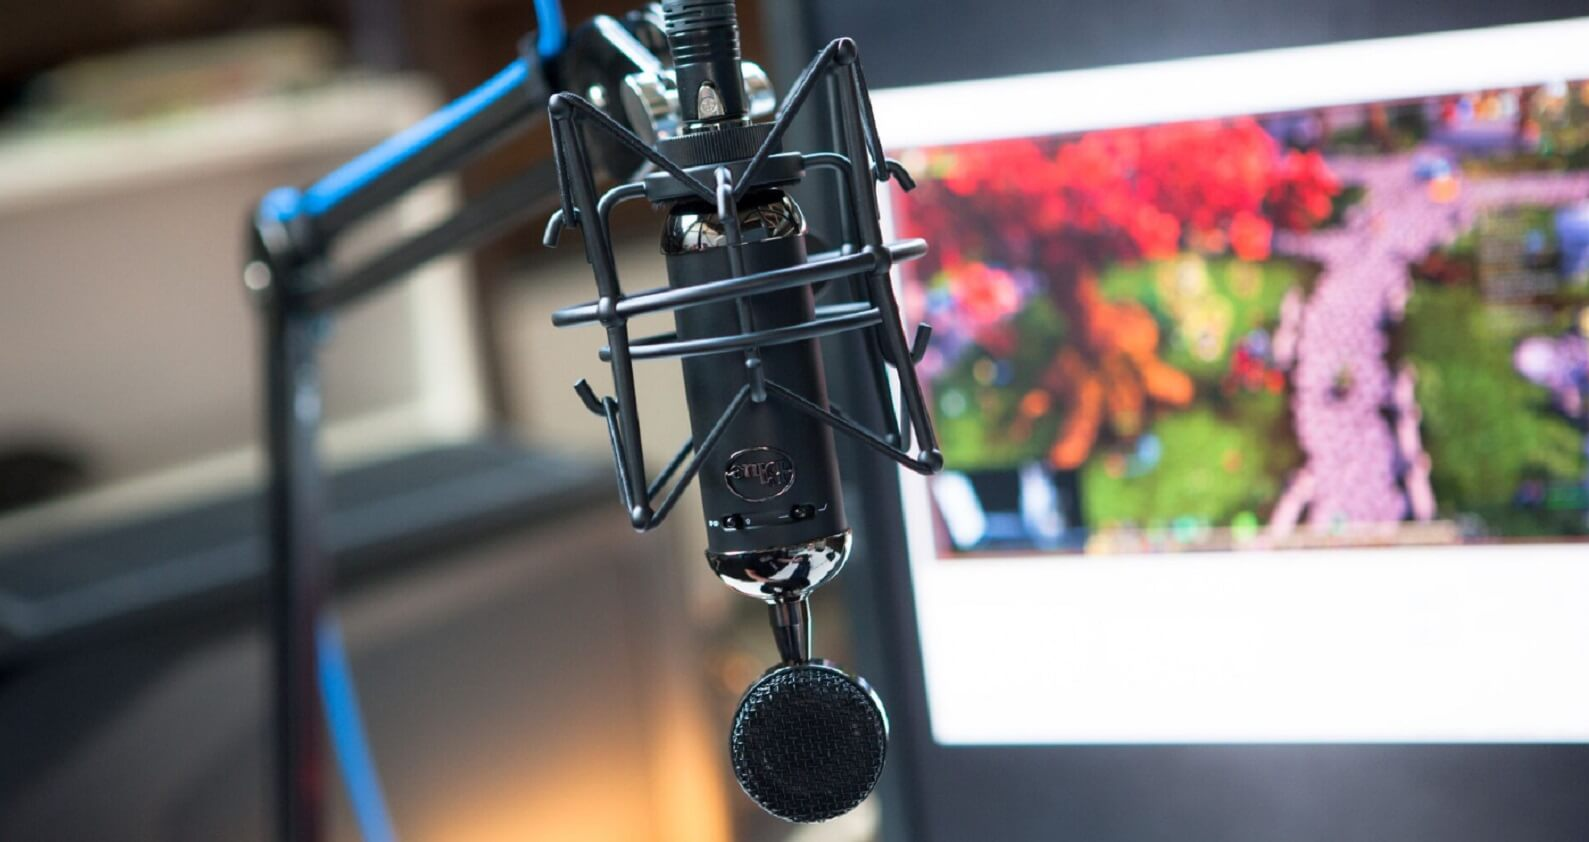 Blue Blackout Spark SL is the microphone you need to jump